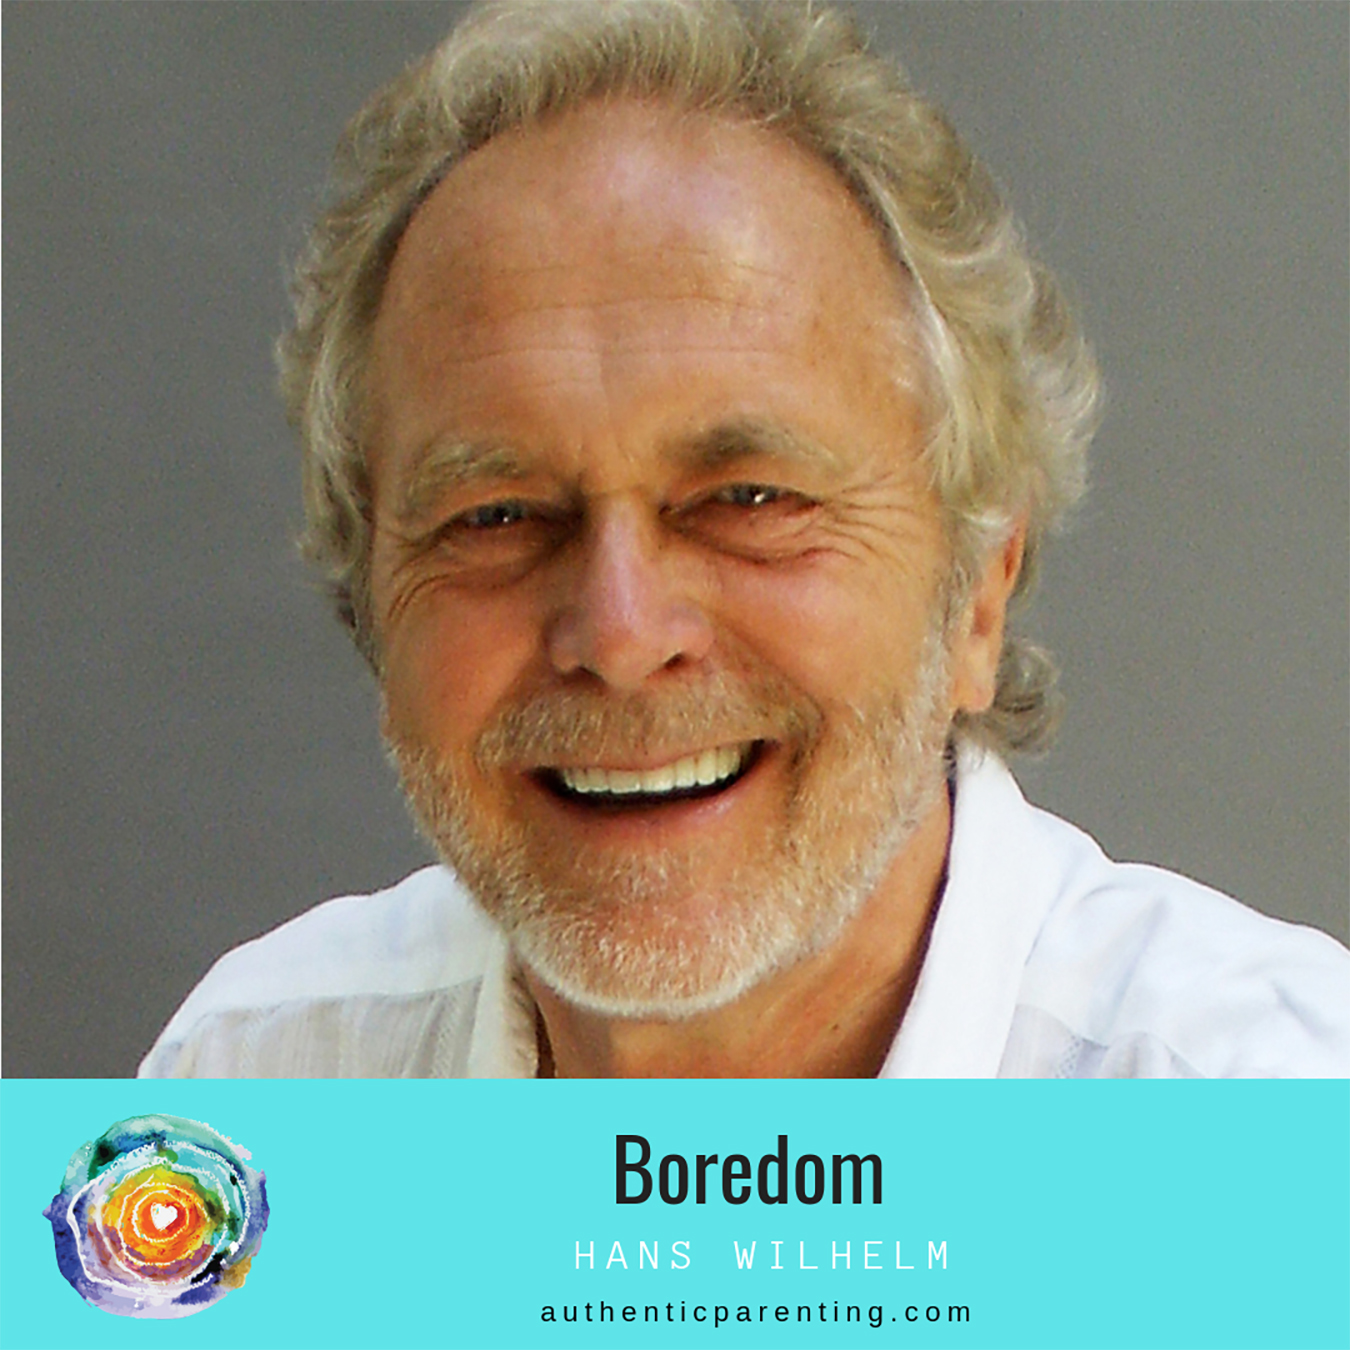 Podcast with Anna Seewald on Boredom    https://authenticparenting.com/boredom